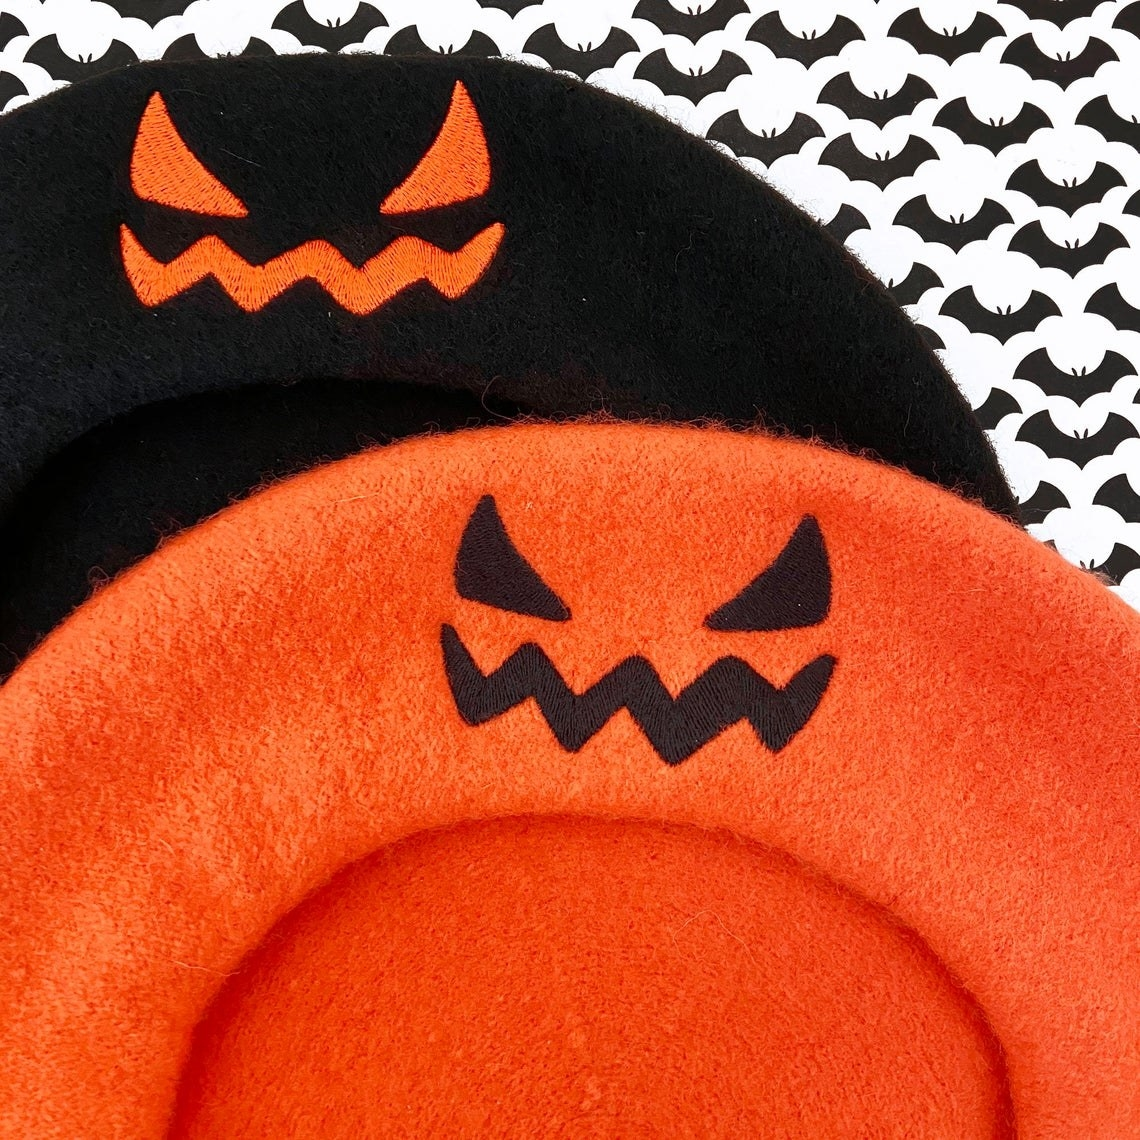 black and orange berets with small jack o lantern faces on the front